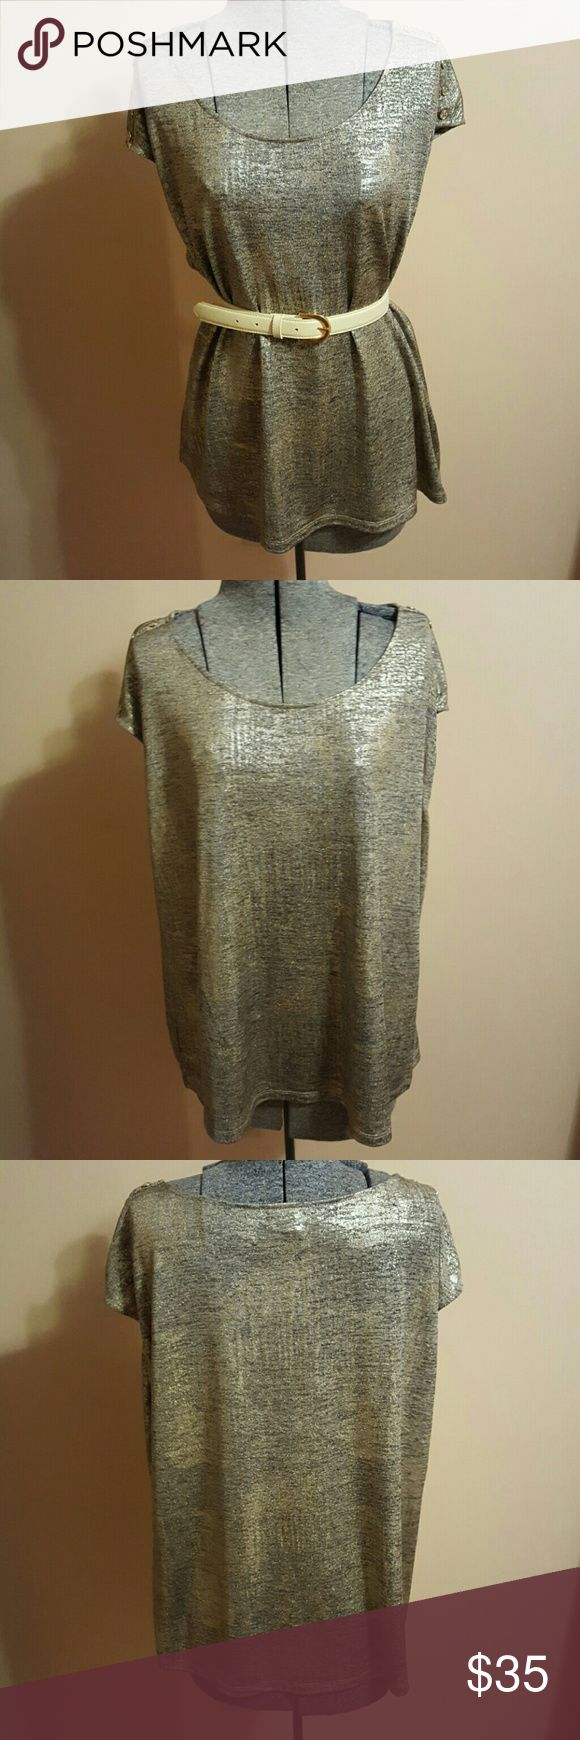 Calvin Klein Gold Top Calvin Klein sparkly gold and silver short-sleeved top. Silky and stretchy with button detailing on the shoulders. Perfect condition. Belt not included. Calvin Klein Tops